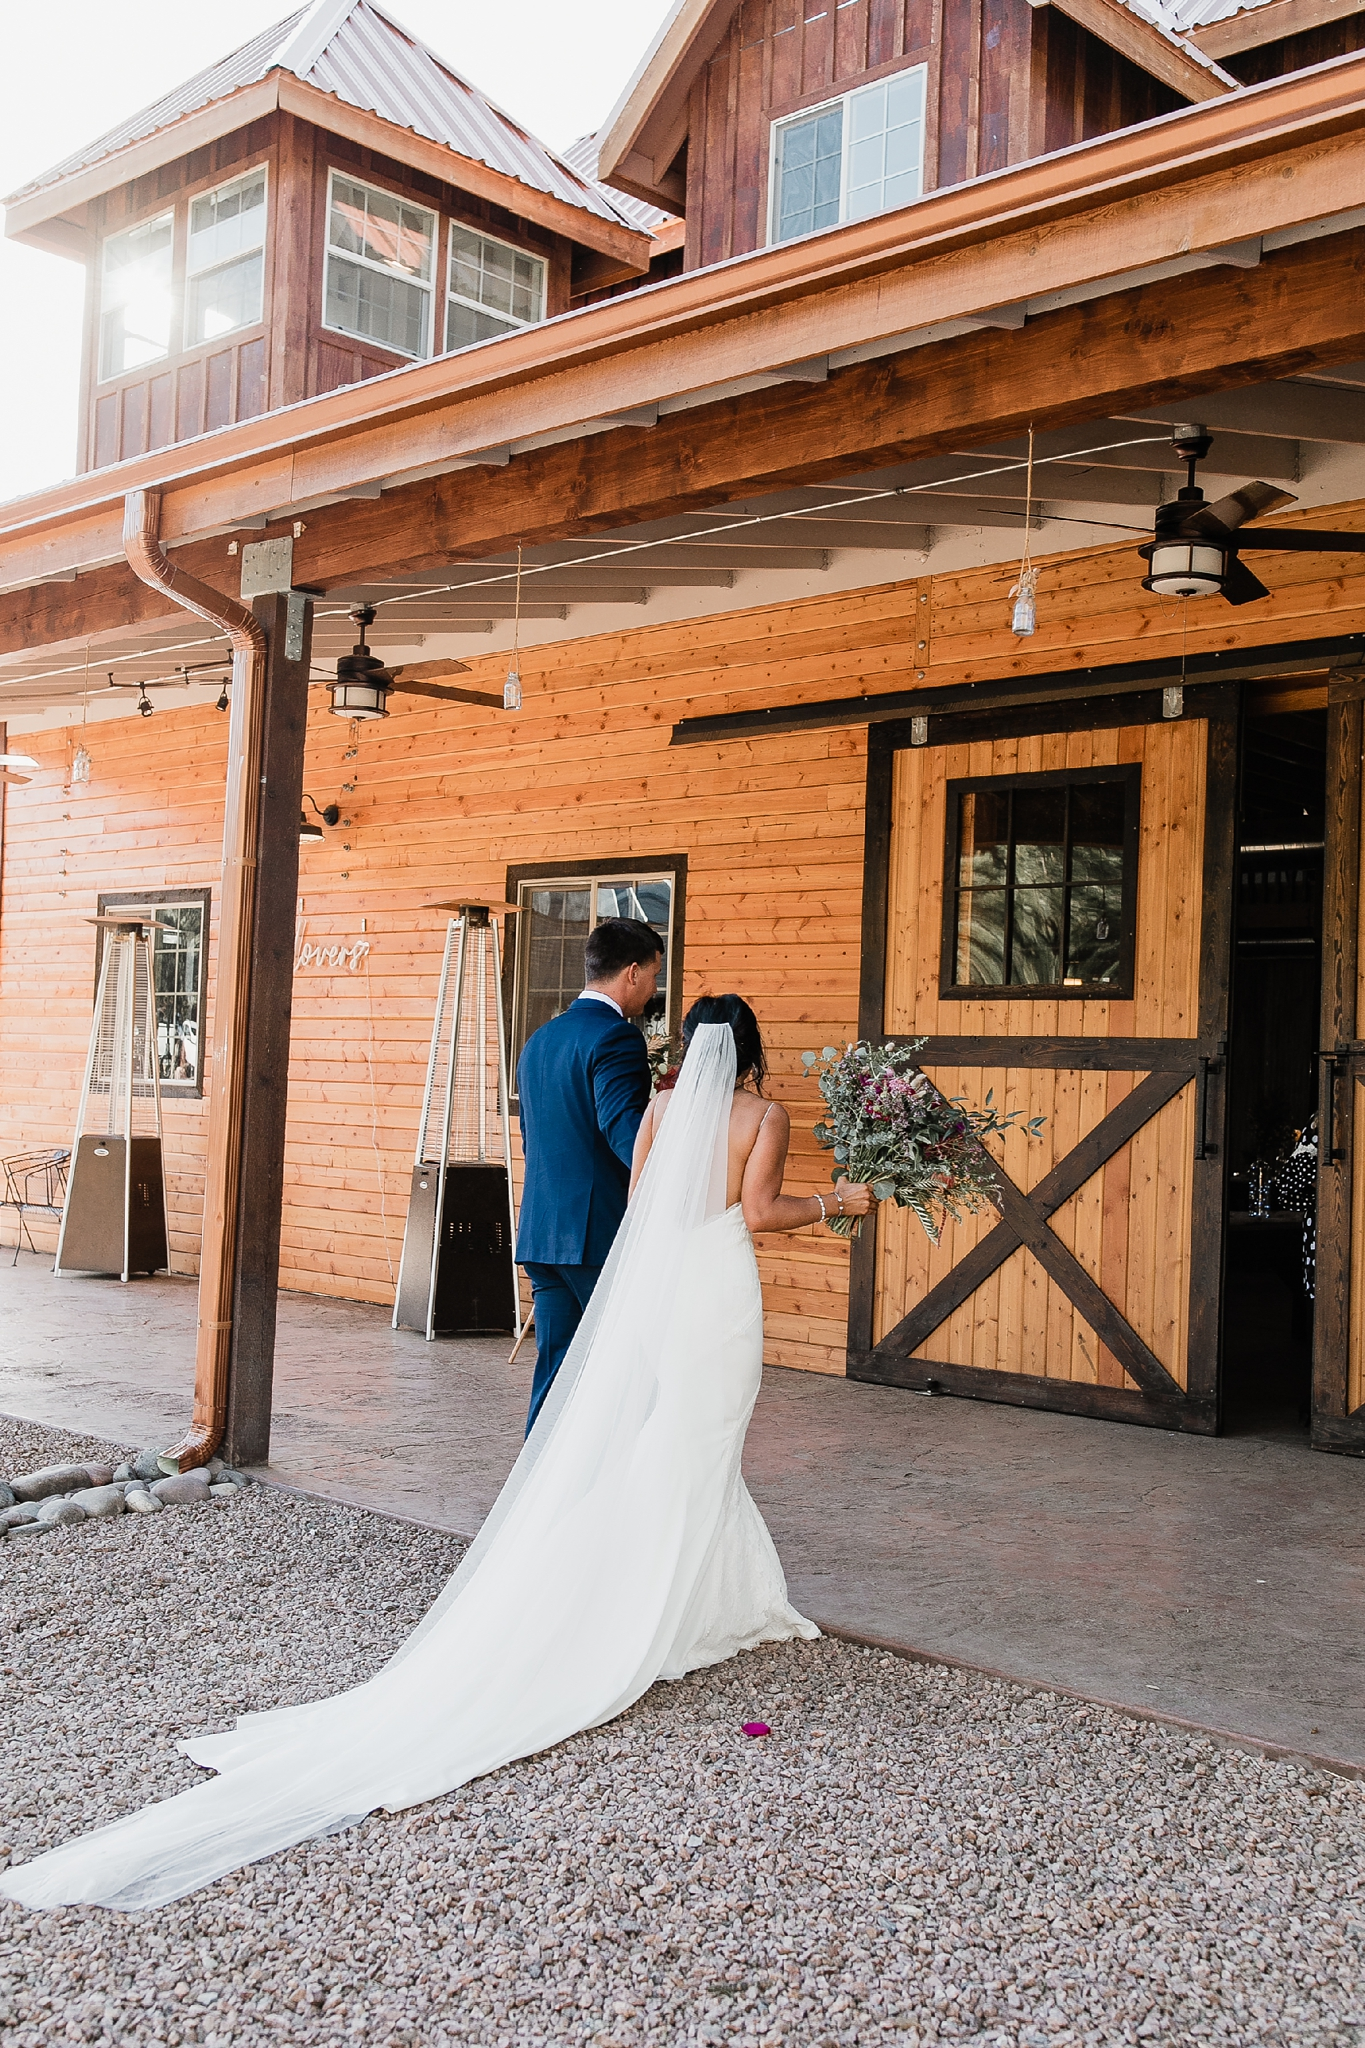 Alicia+lucia+photography+-+albuquerque+wedding+photographer+-+santa+fe+wedding+photography+-+new+mexico+wedding+photographer+-+new+mexico+wedding+-+new+mexico+wedding+-+barn+wedding+-+enchanted+vine+barn+wedding+-+ruidoso+wedding_0113.jpg